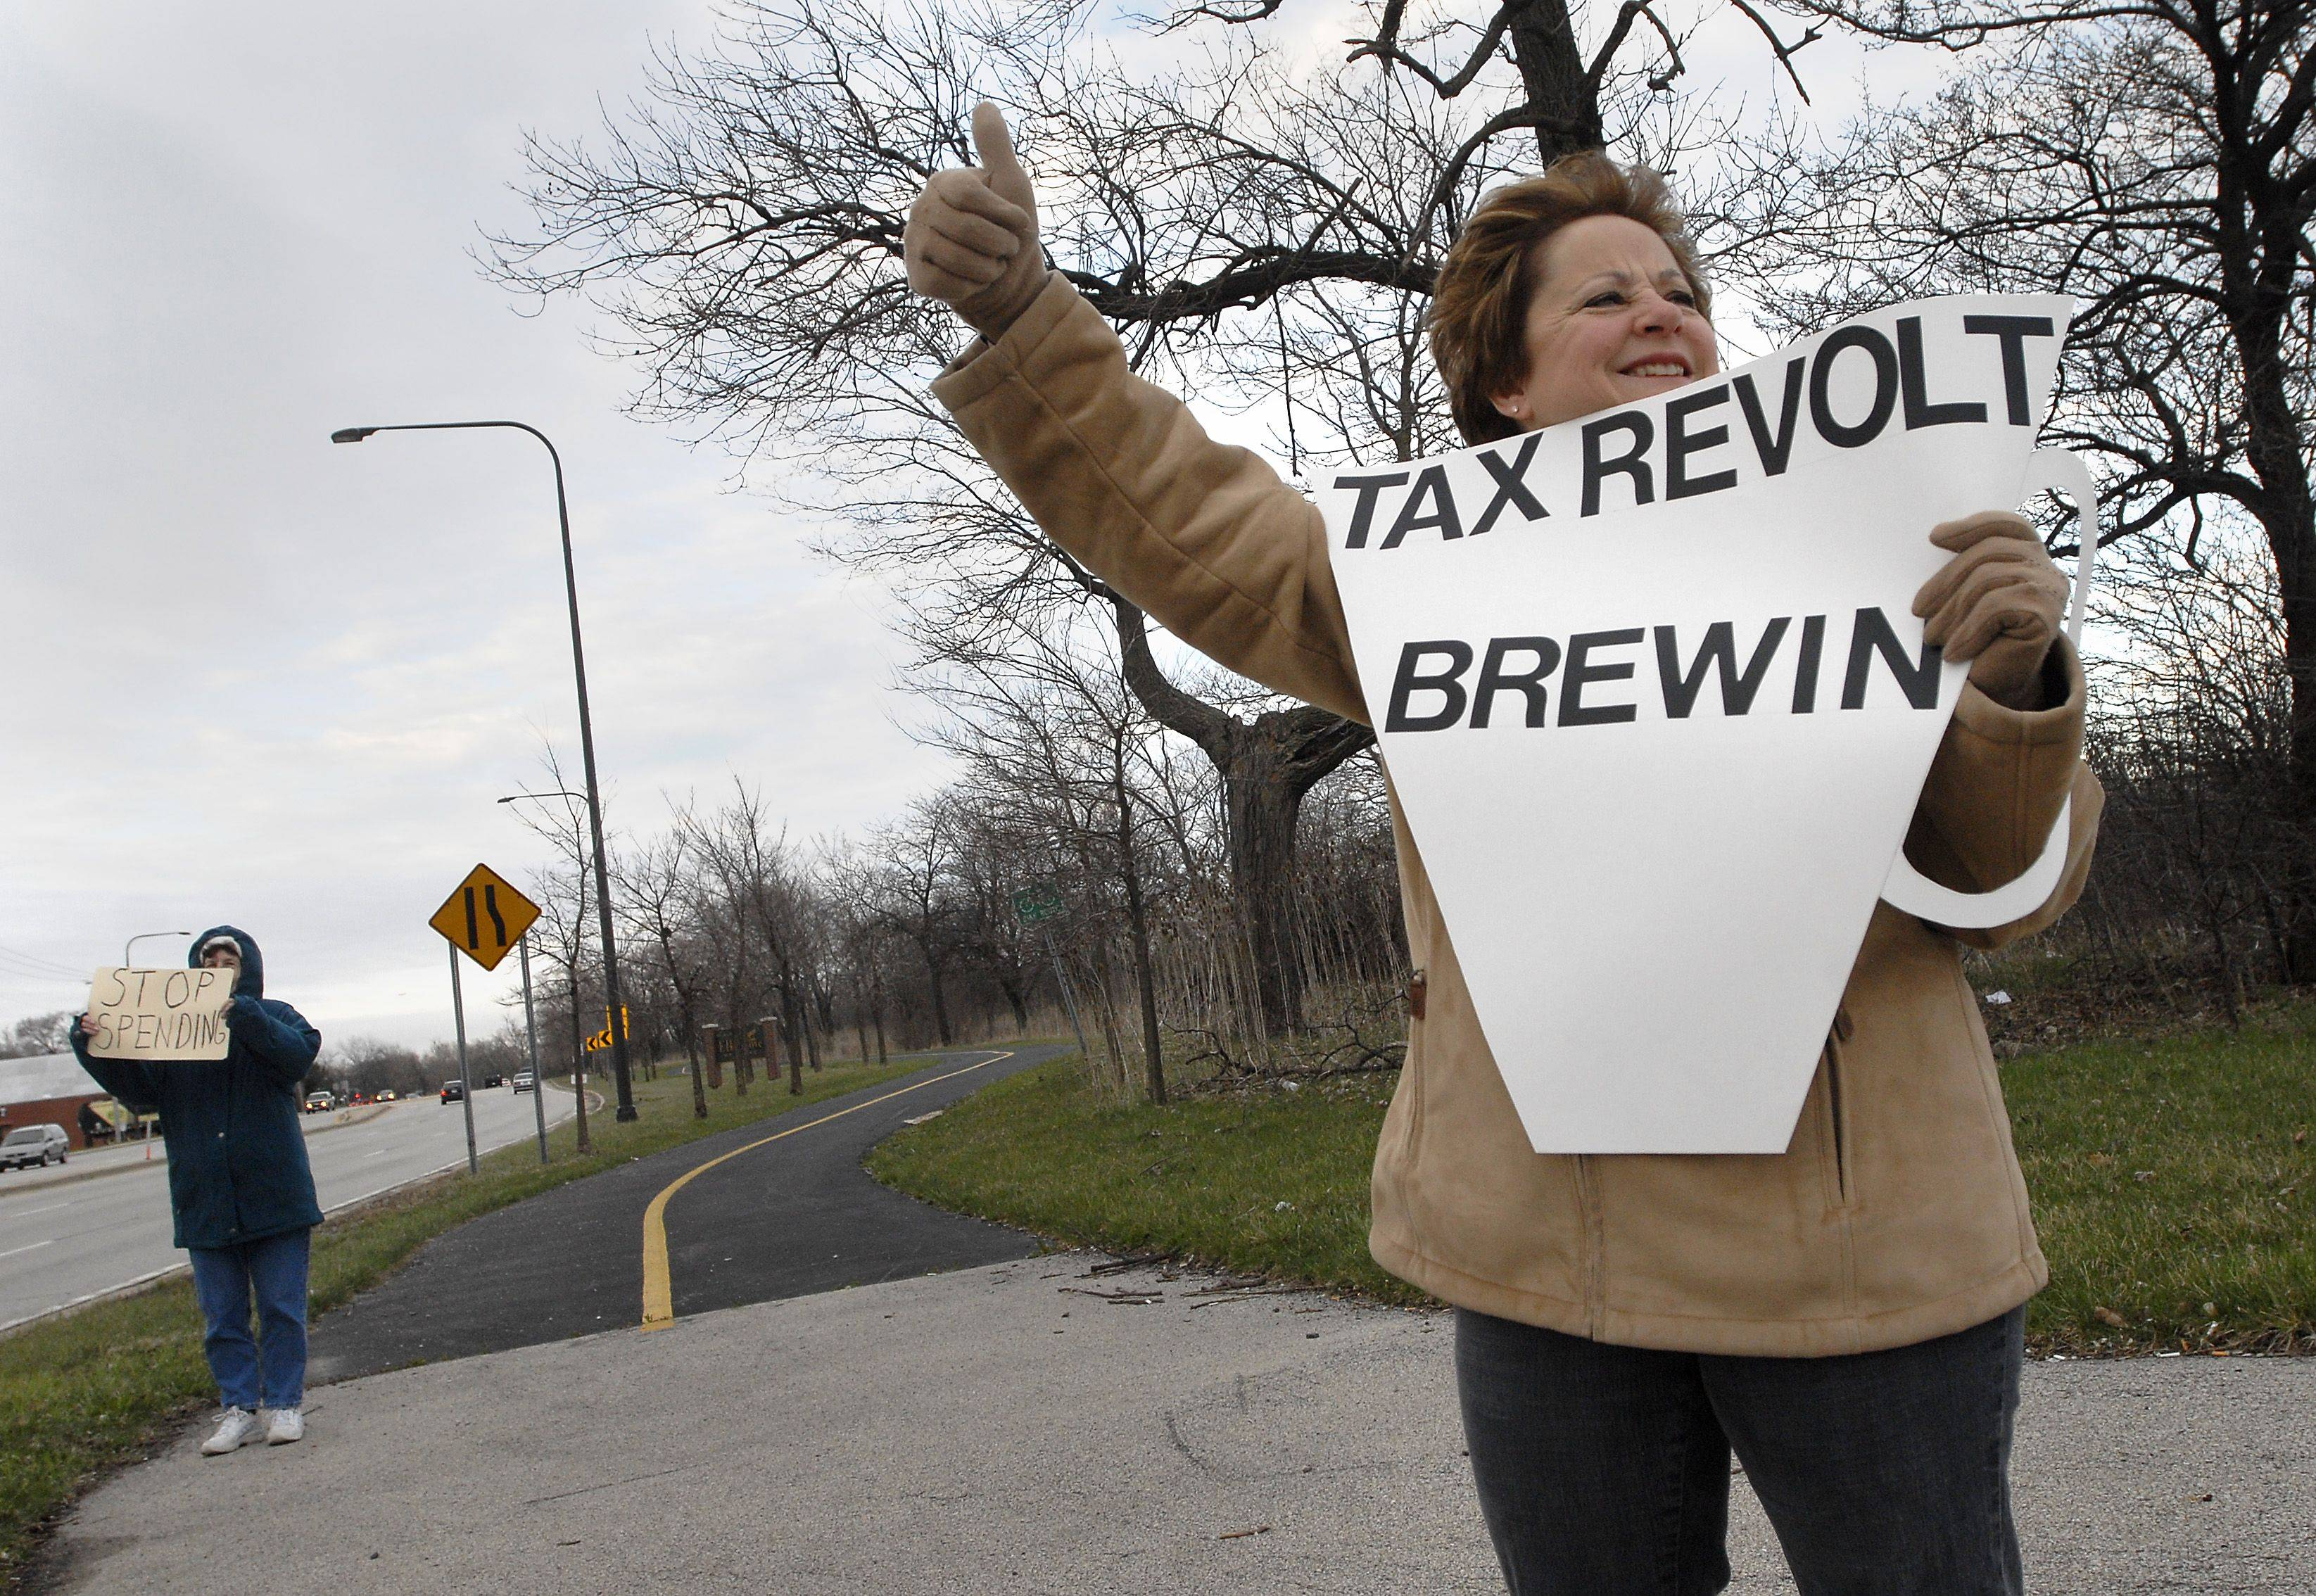 Bill Zars/bzars@dailyherald.com � Sue Gorden of Elk Gove Village give a thumbs up to a honking car during a Tea Bag anti-tax protest at Higgins and Arlington Heights Road in Elk Grove Village. Gorden said she was protesting because a 1000 page budget was passed in 48 hours and no one could have had time to read it properly. She said she is also opposed to government funding of abortion and stem cell research.